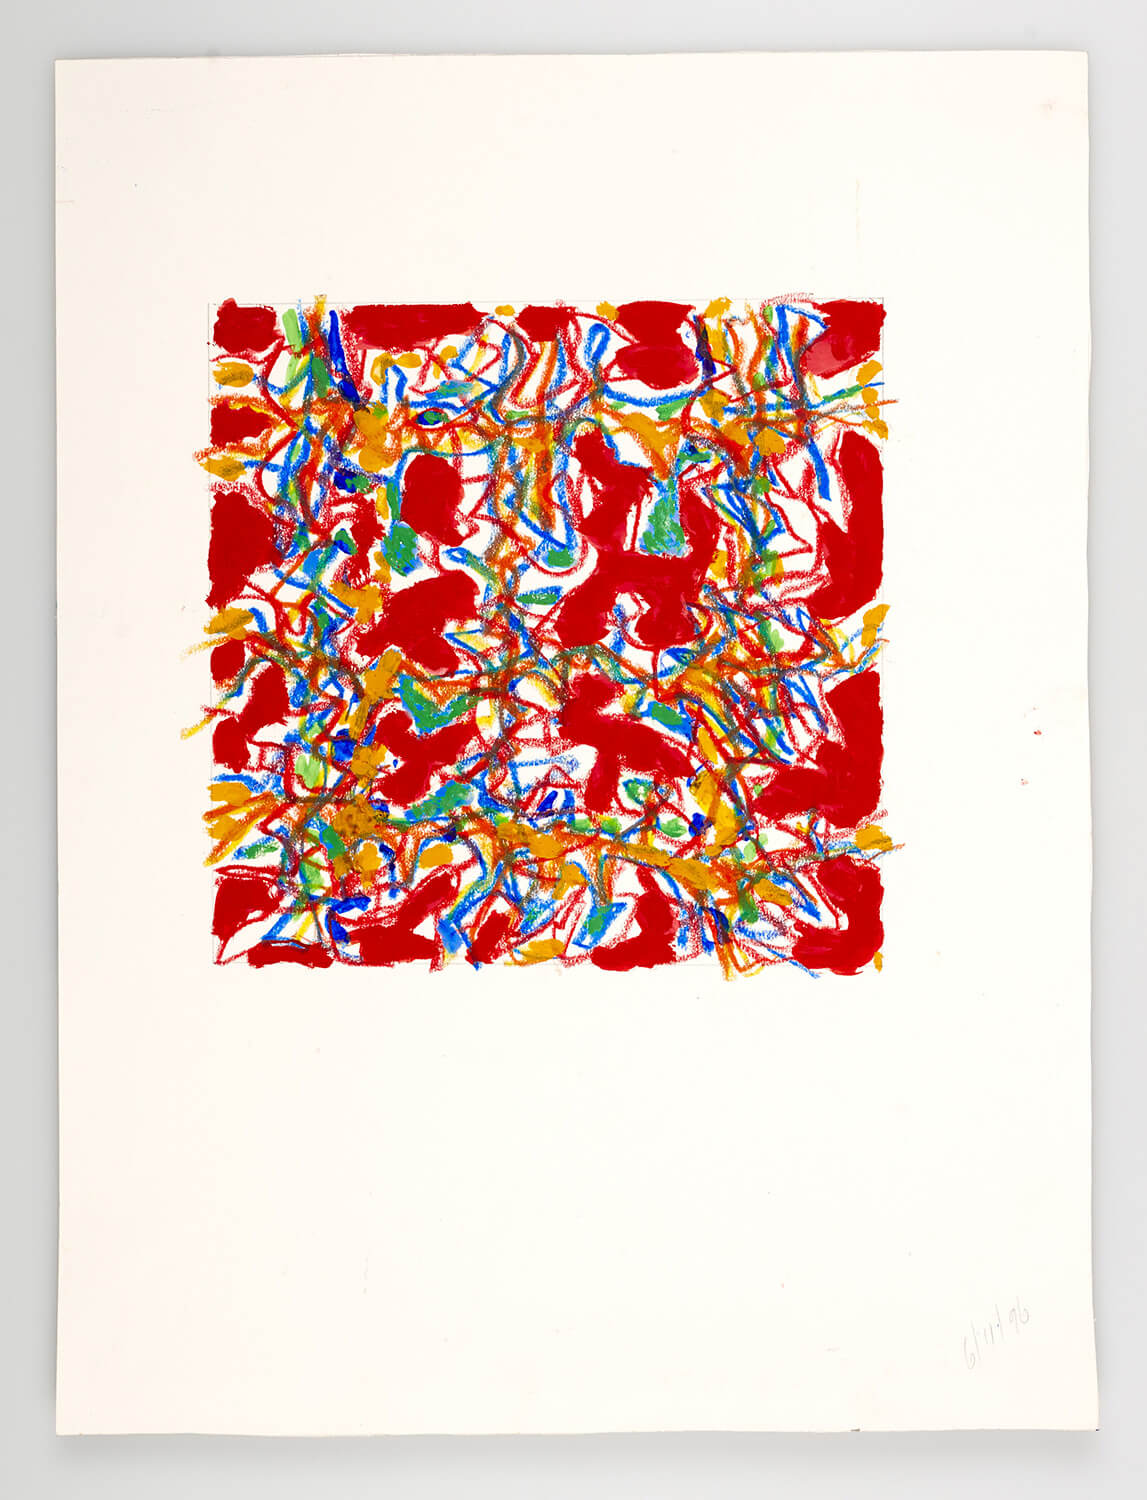 JB132 - Abstract Red - 1996 - 25 x 25 cm - Acrylic and conte on paper